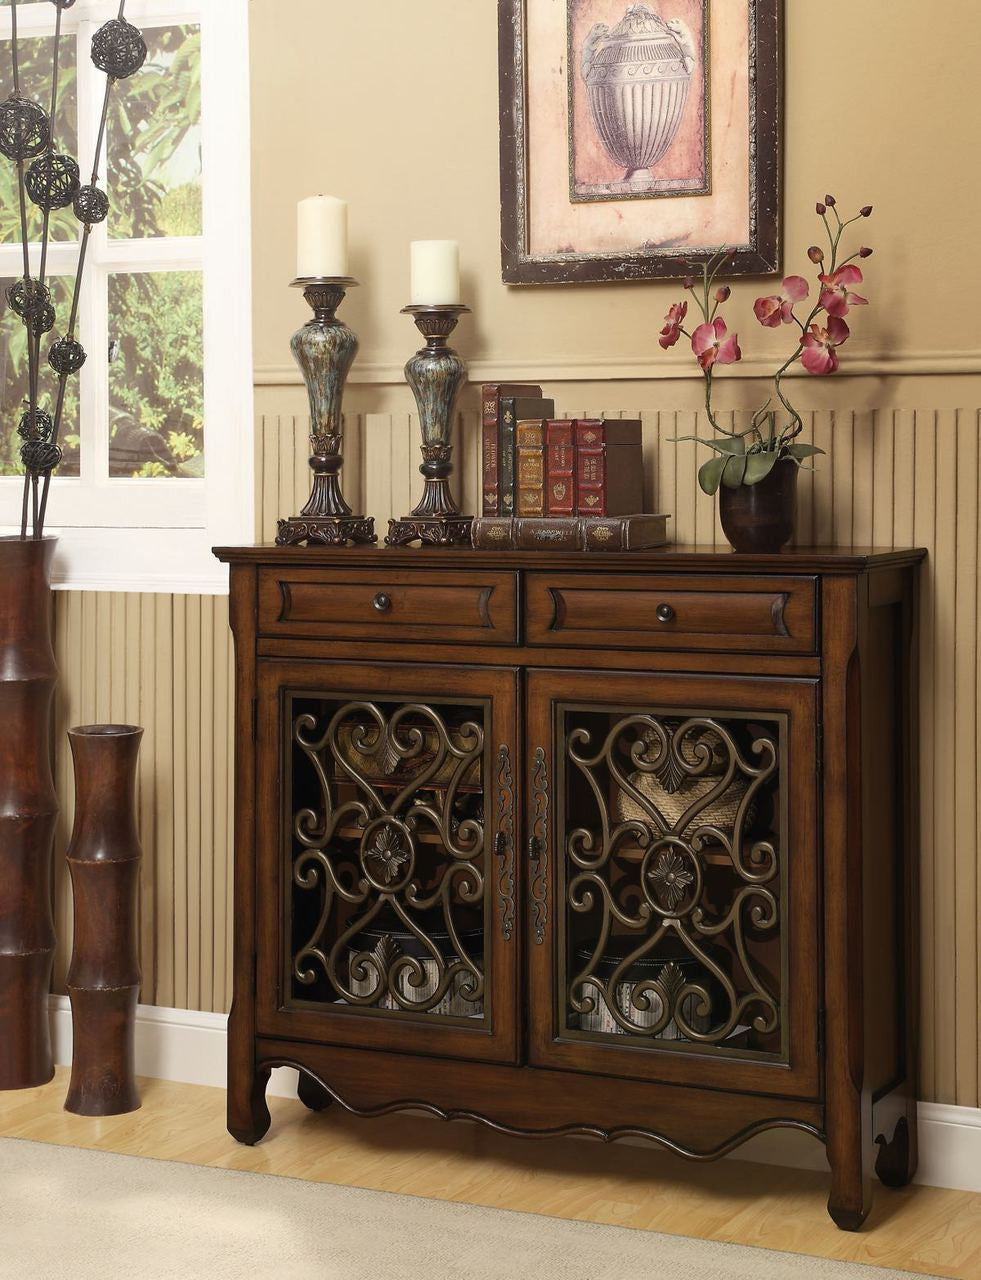 Hollin Brown & Bronze Metal Cupboard , Accent Chest - Coast to Coast Furniture, My Furniture Place